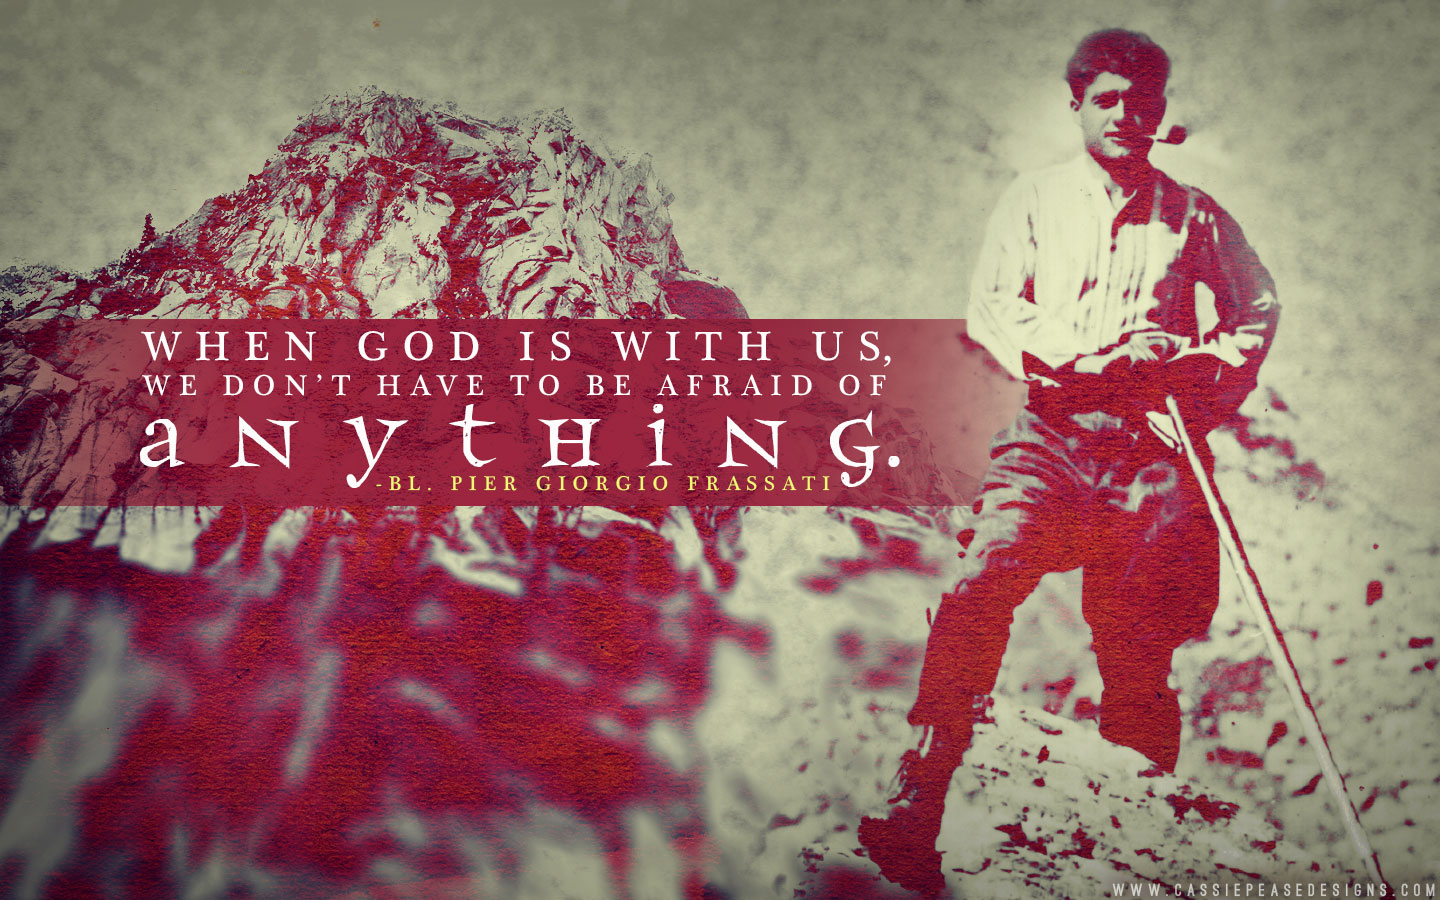 Bl. Pier Giorgio Frassati (red) Desktop Wallpaper